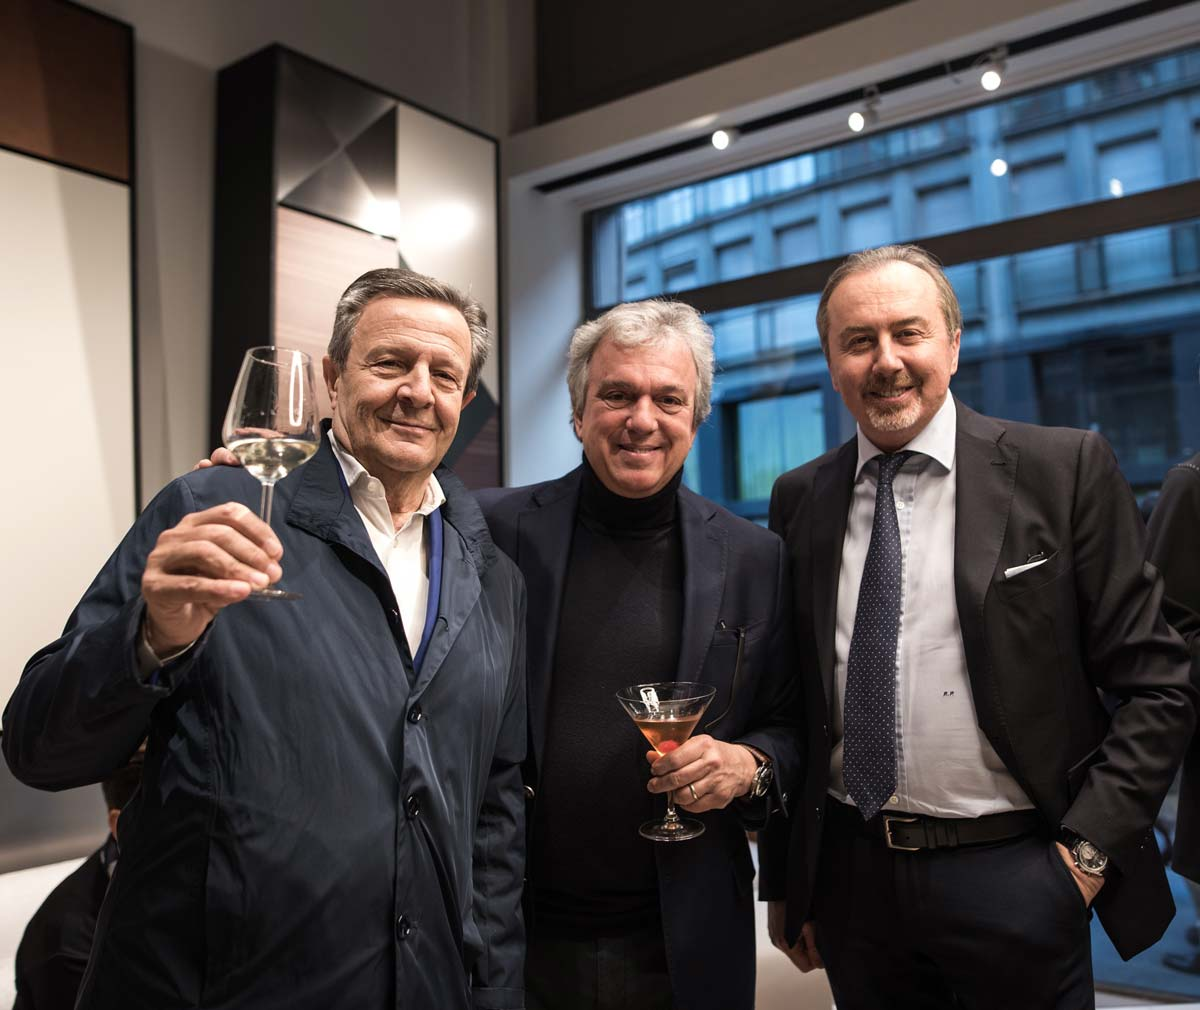 New York Suite Party, Showroom Oak Via Fatebenefratelli, General Manager Roberto, Architetto Marco Piva, Leoni e Presidente Renato Pologna